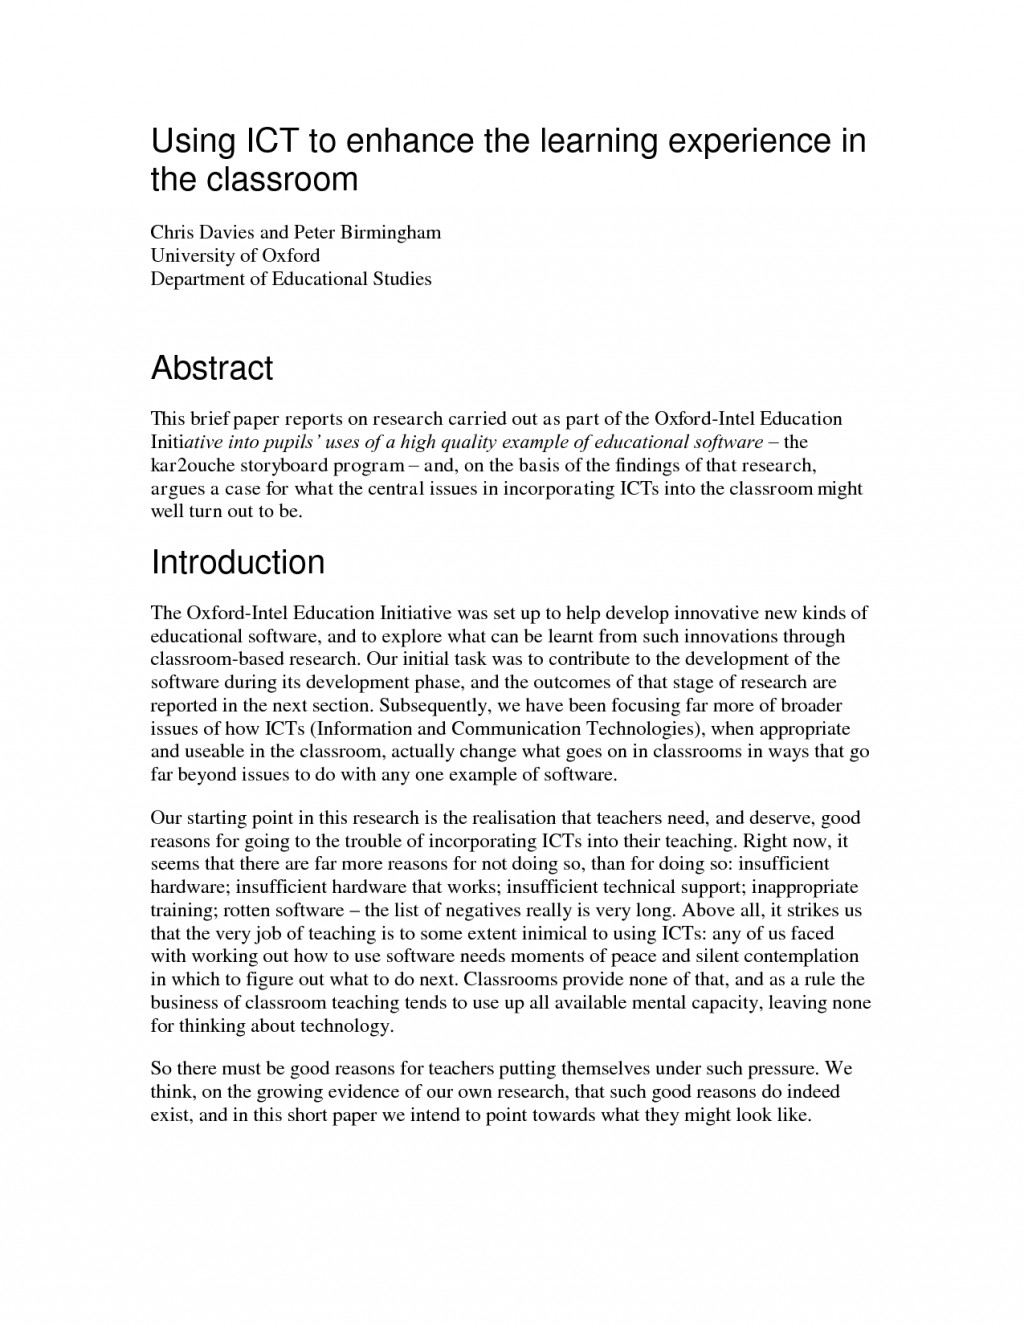 002 Essay Abstract Example Awful Paper Apa Without Research Pdf Large